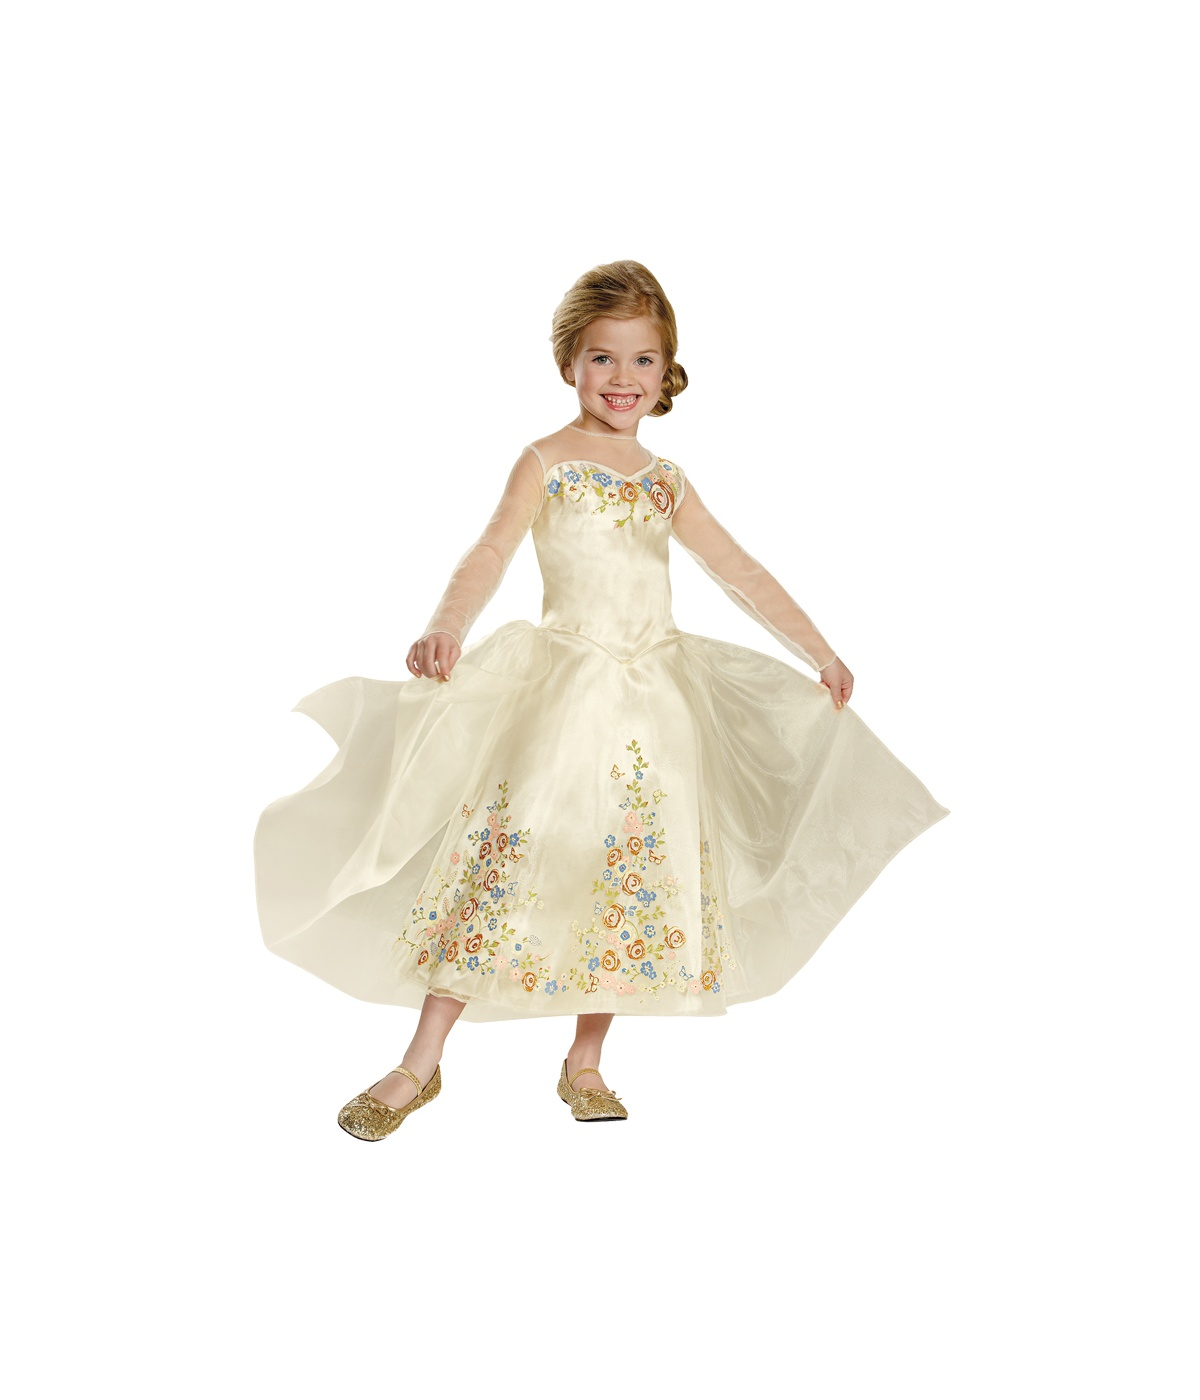 Kids disney cinderella wedding dress deluxe girls costume for Cinderella wedding dress up